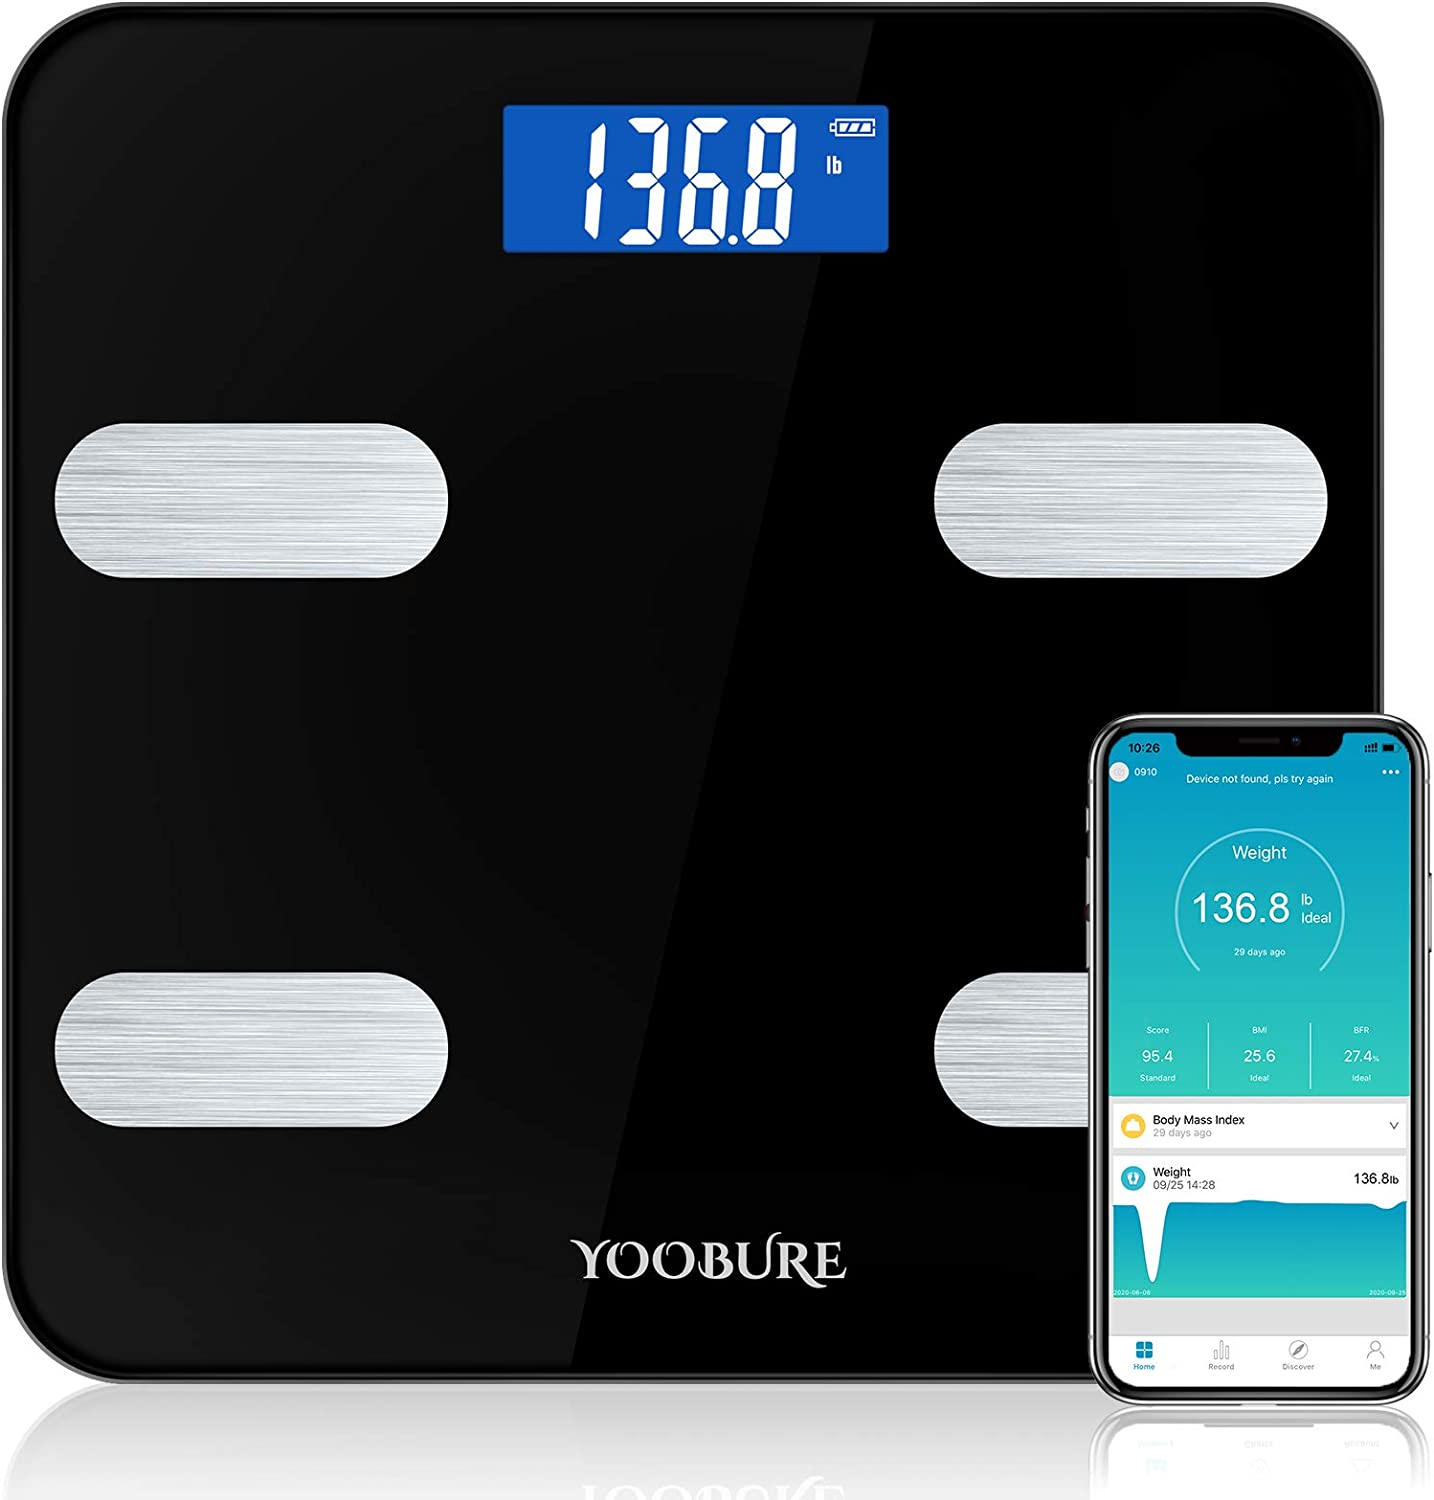 Bluetooth Body Fat Scale, Yoobure Smart Scale Bathroom Digital Weight Scale with iOS Android APP, Highly Accurate Body Weight BMI Scale, Round Corner Design Body Composition Analyzer